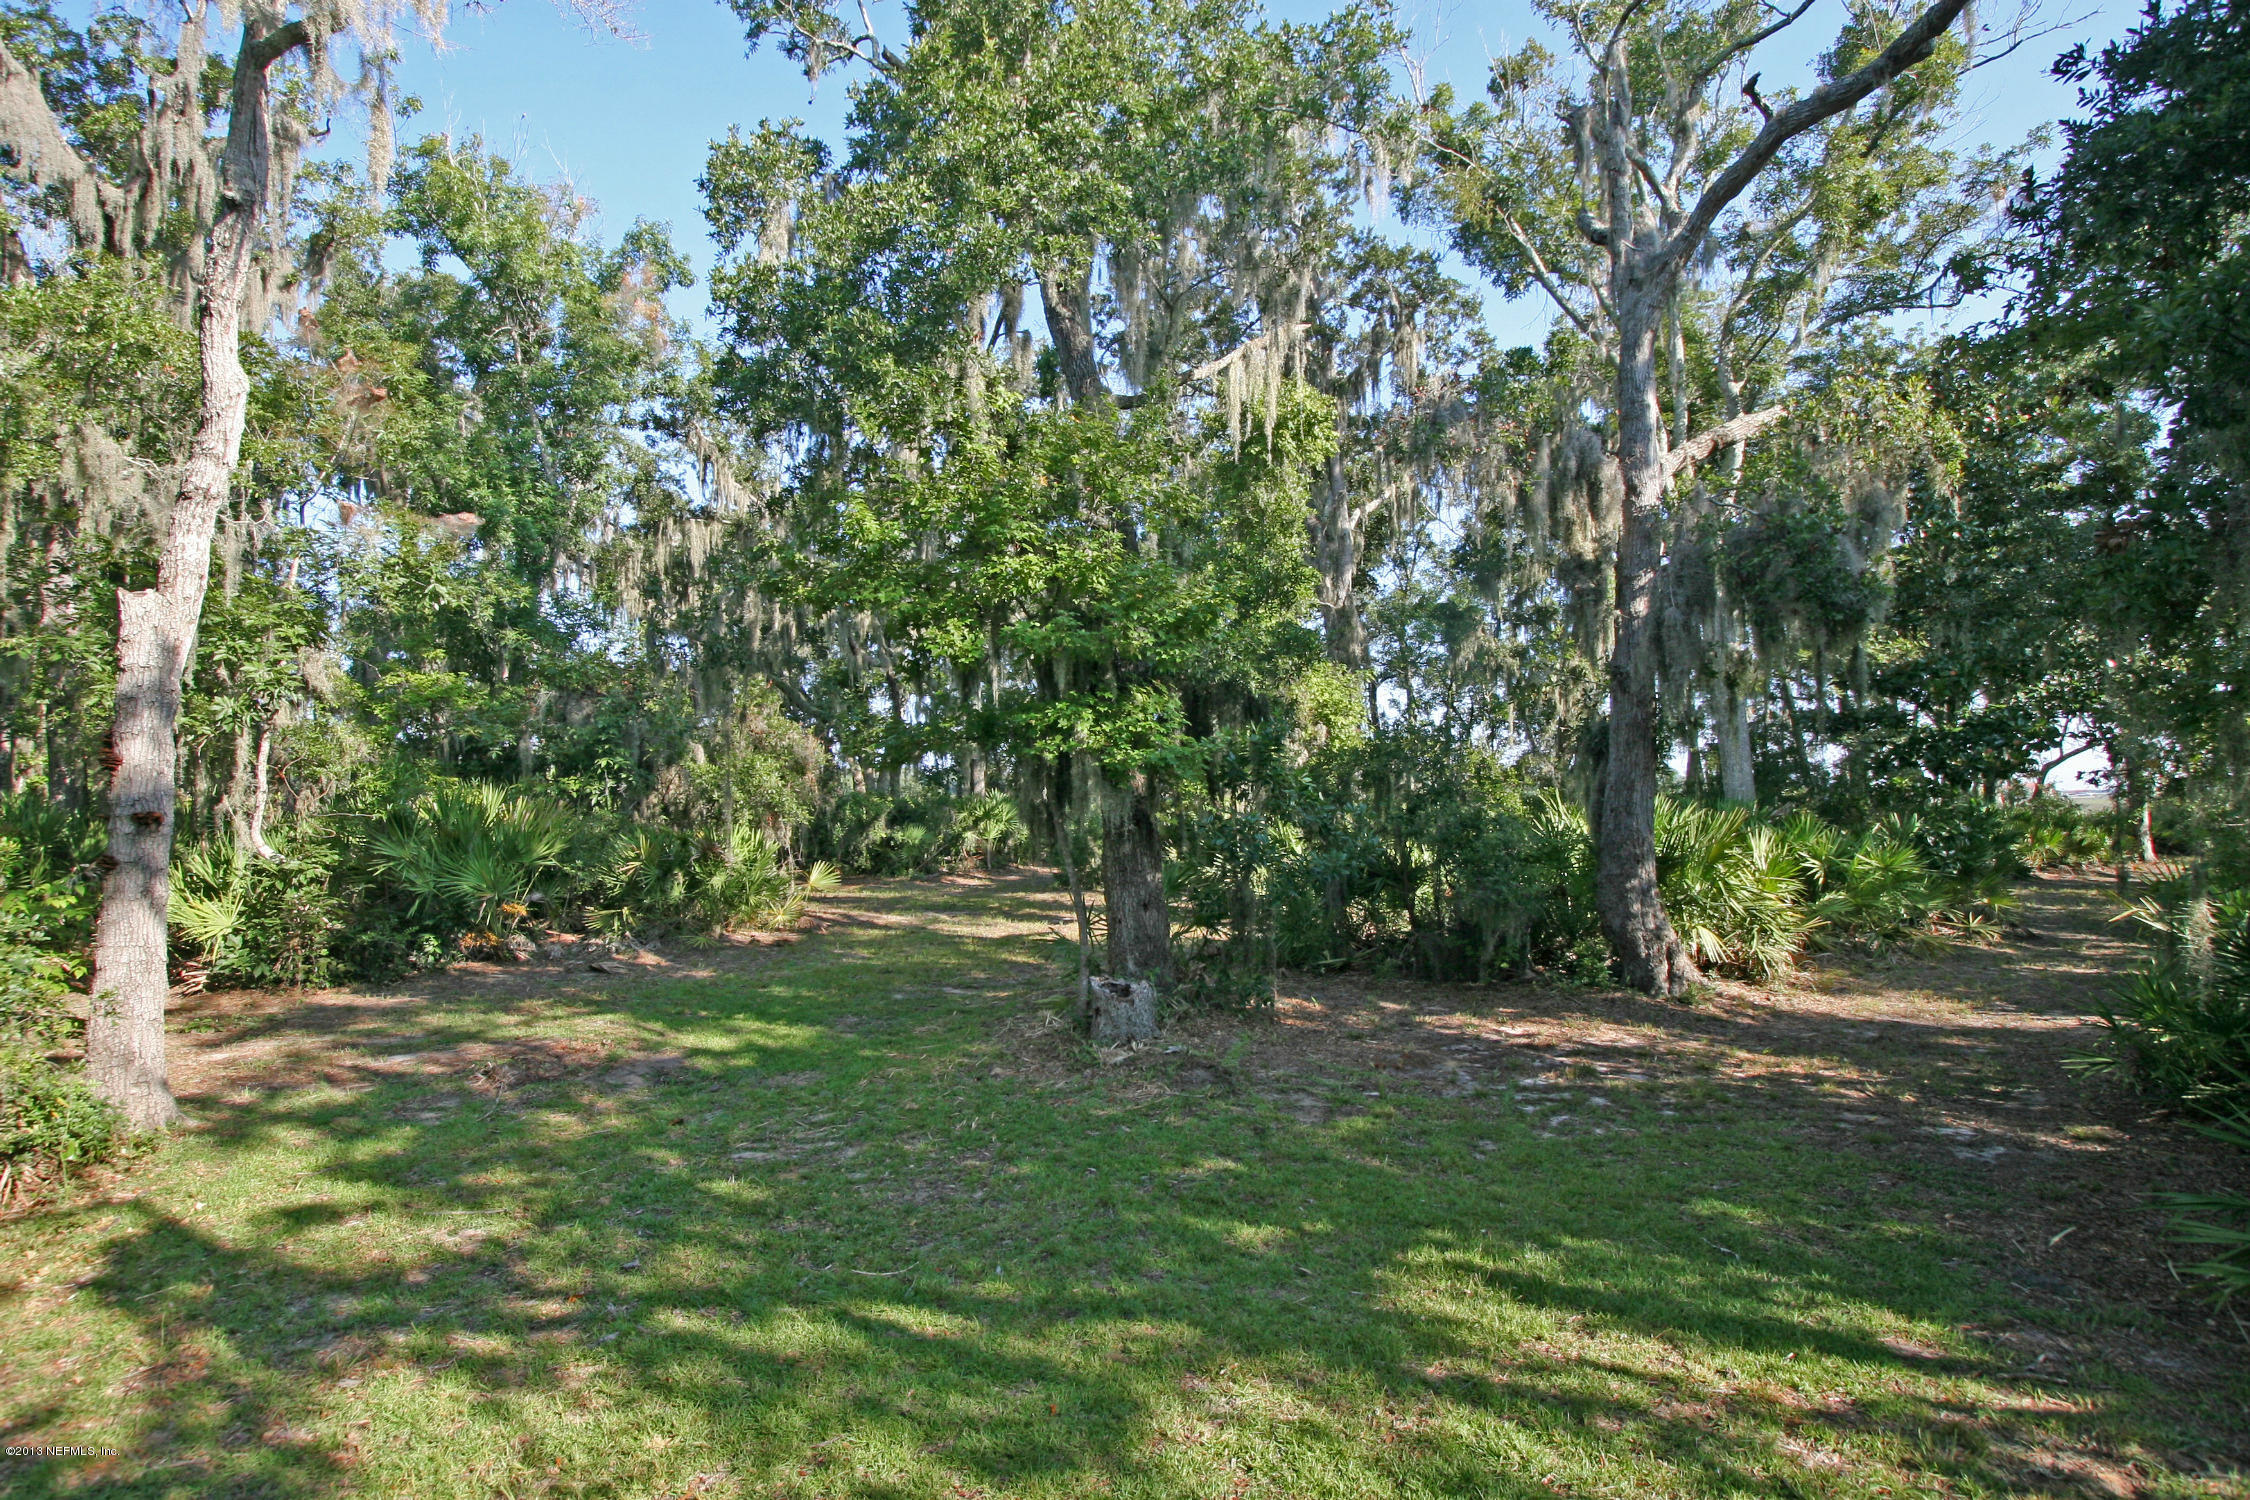 0 FIDDLERS PT., JACKSONVILLE, FLORIDA 32225, ,Vacant land,For sale,FIDDLERS PT.,680695